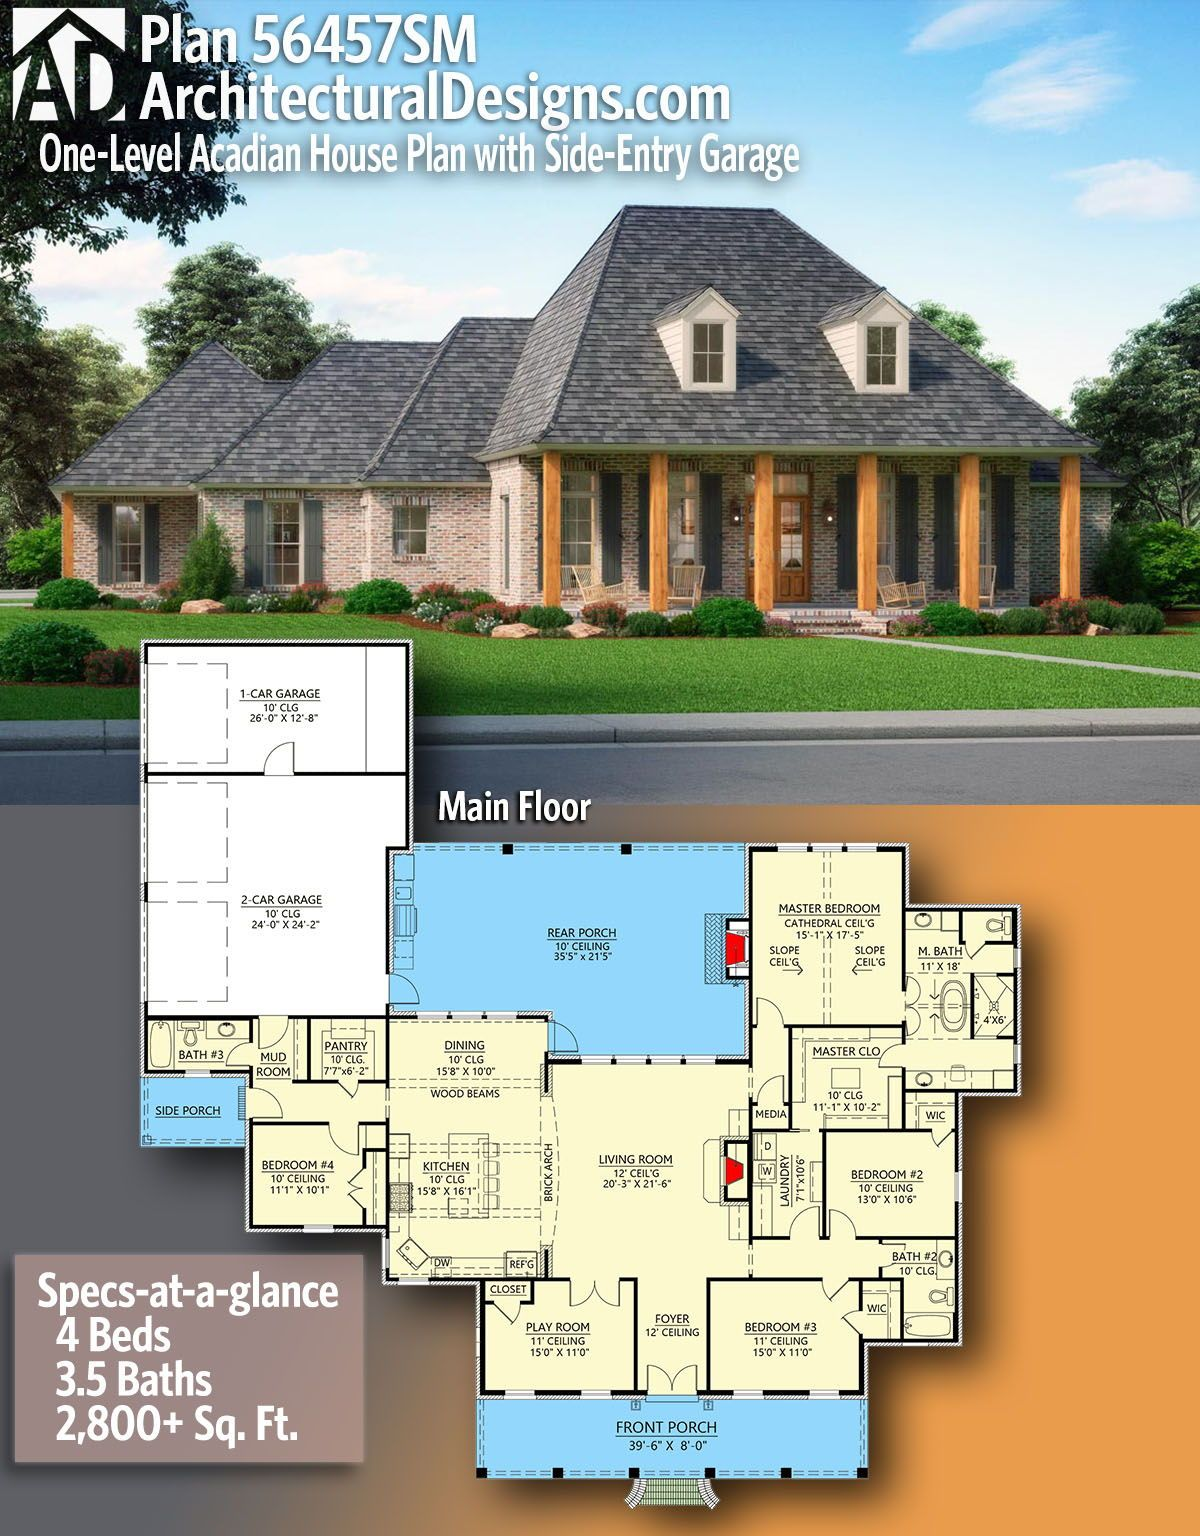 Plan 56457sm One Level Acadian House Plan With Side Entry Garage